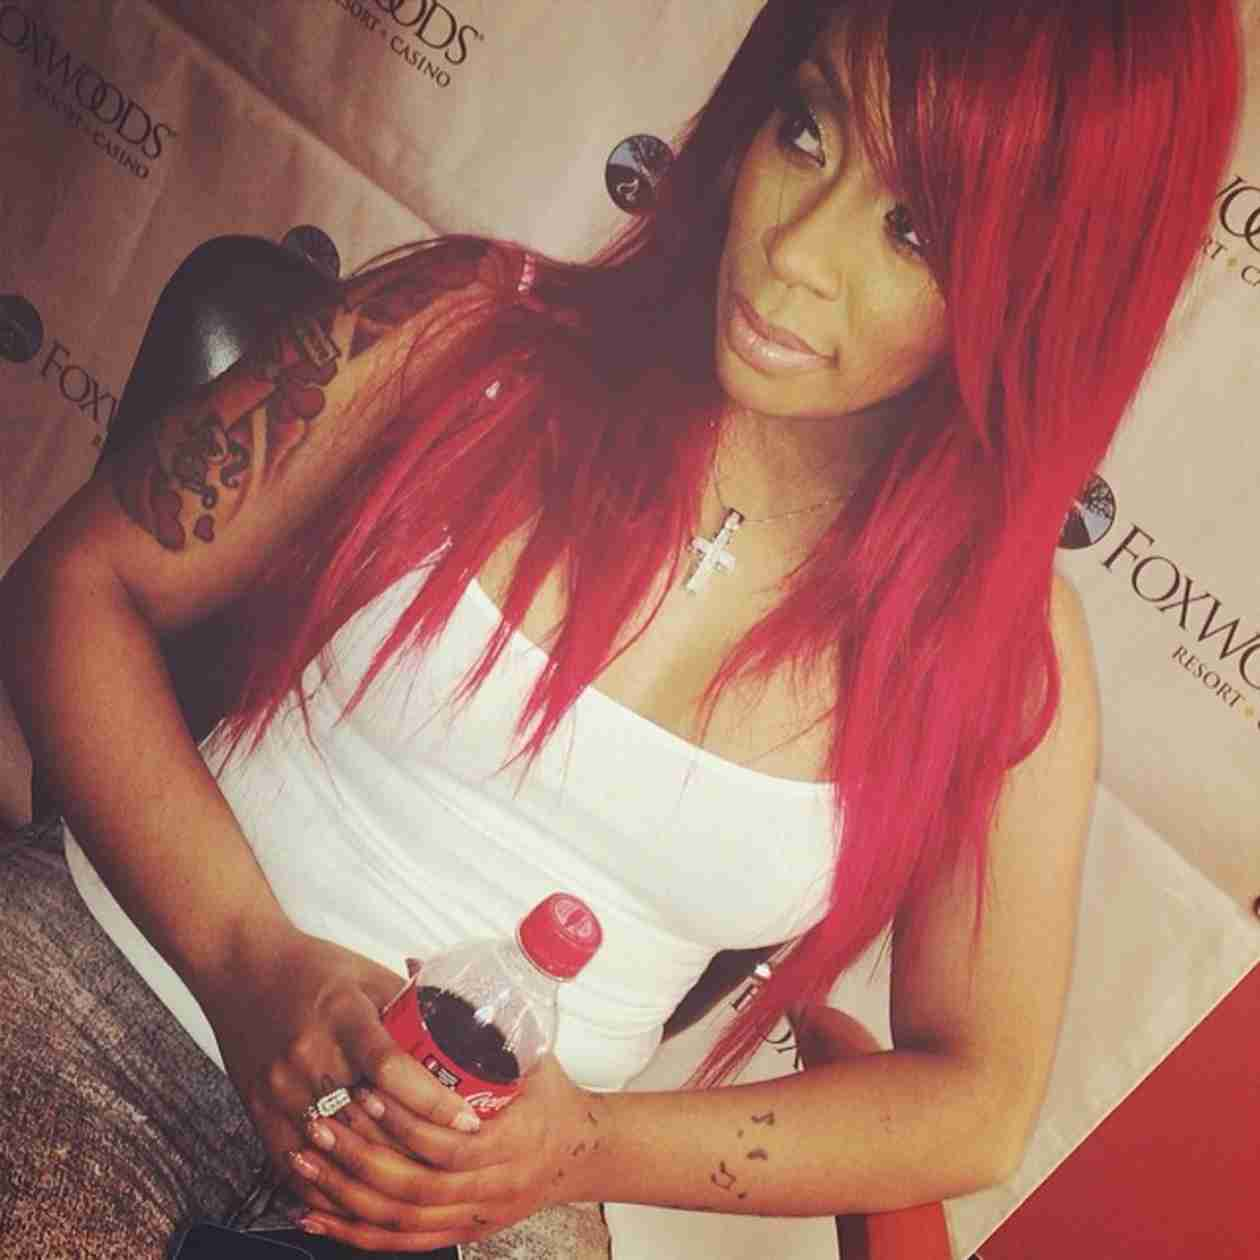 K. Michelle Goes to Hospital, Thanks Fans For Support (PHOTO)